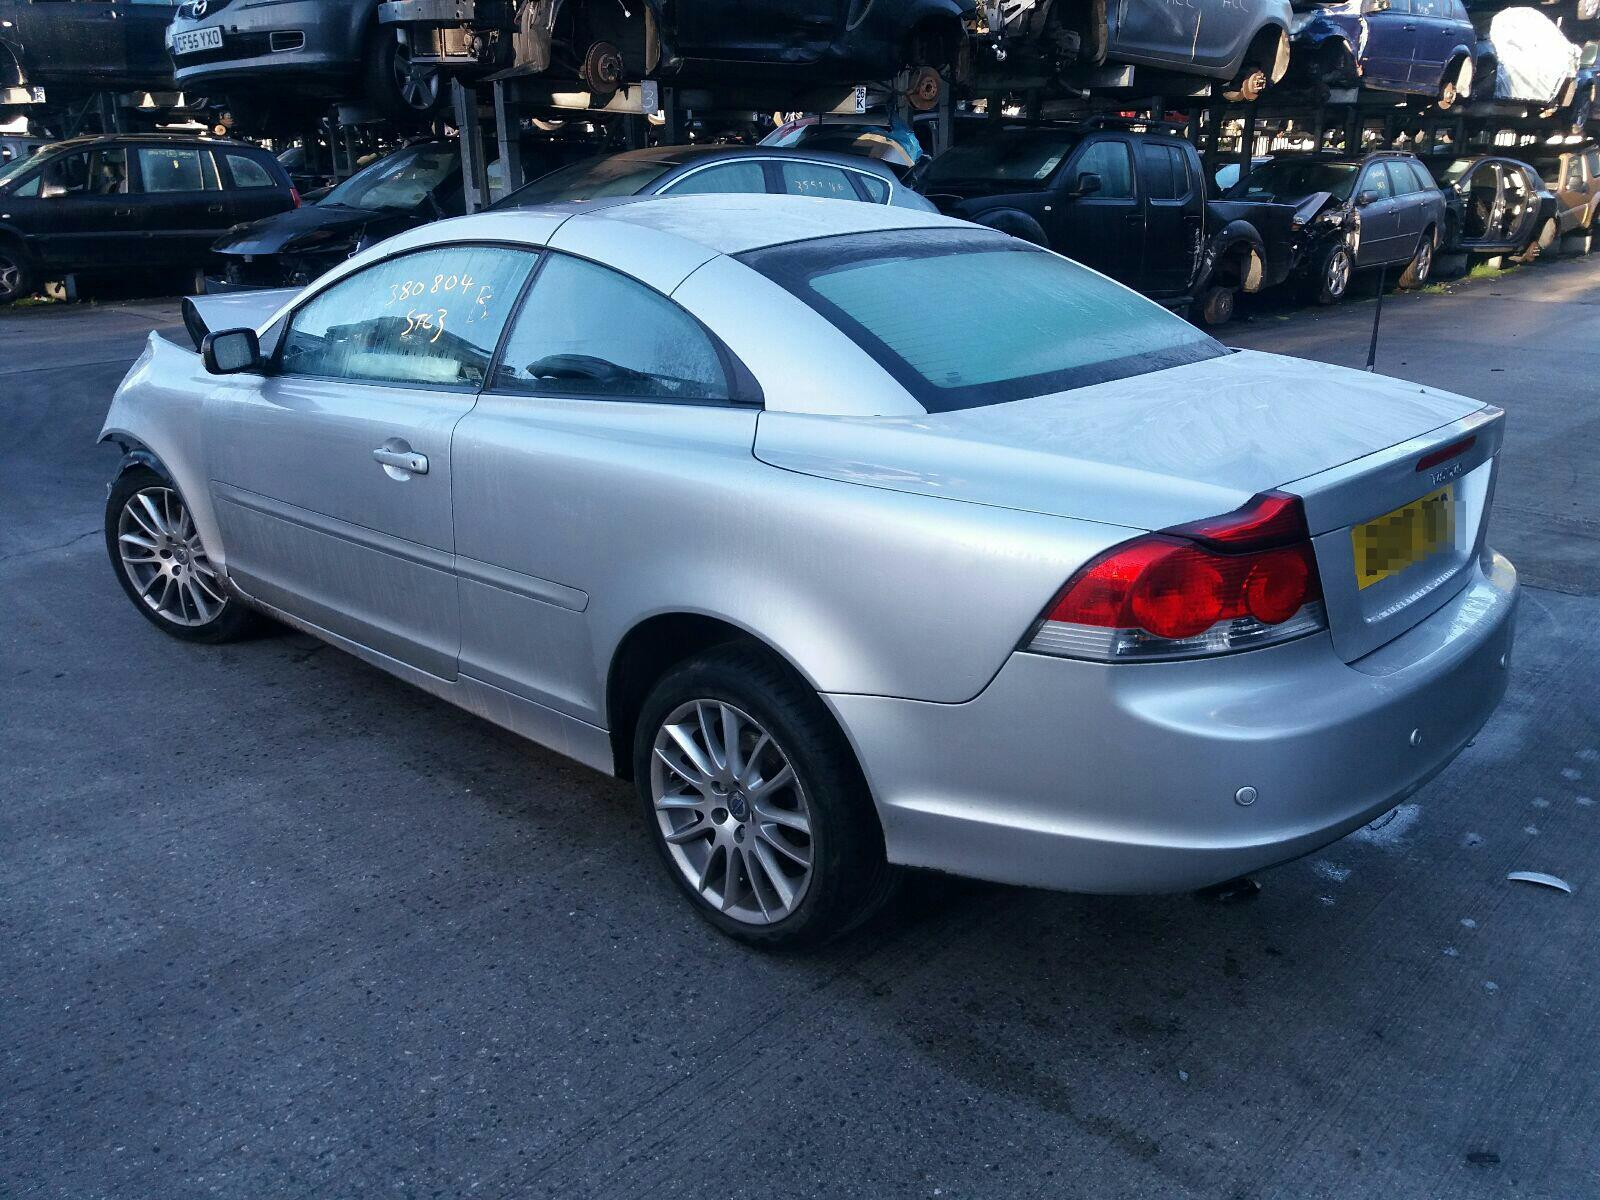 eastleigh sale convertible for local hampshire uk used in motors co volvo cars